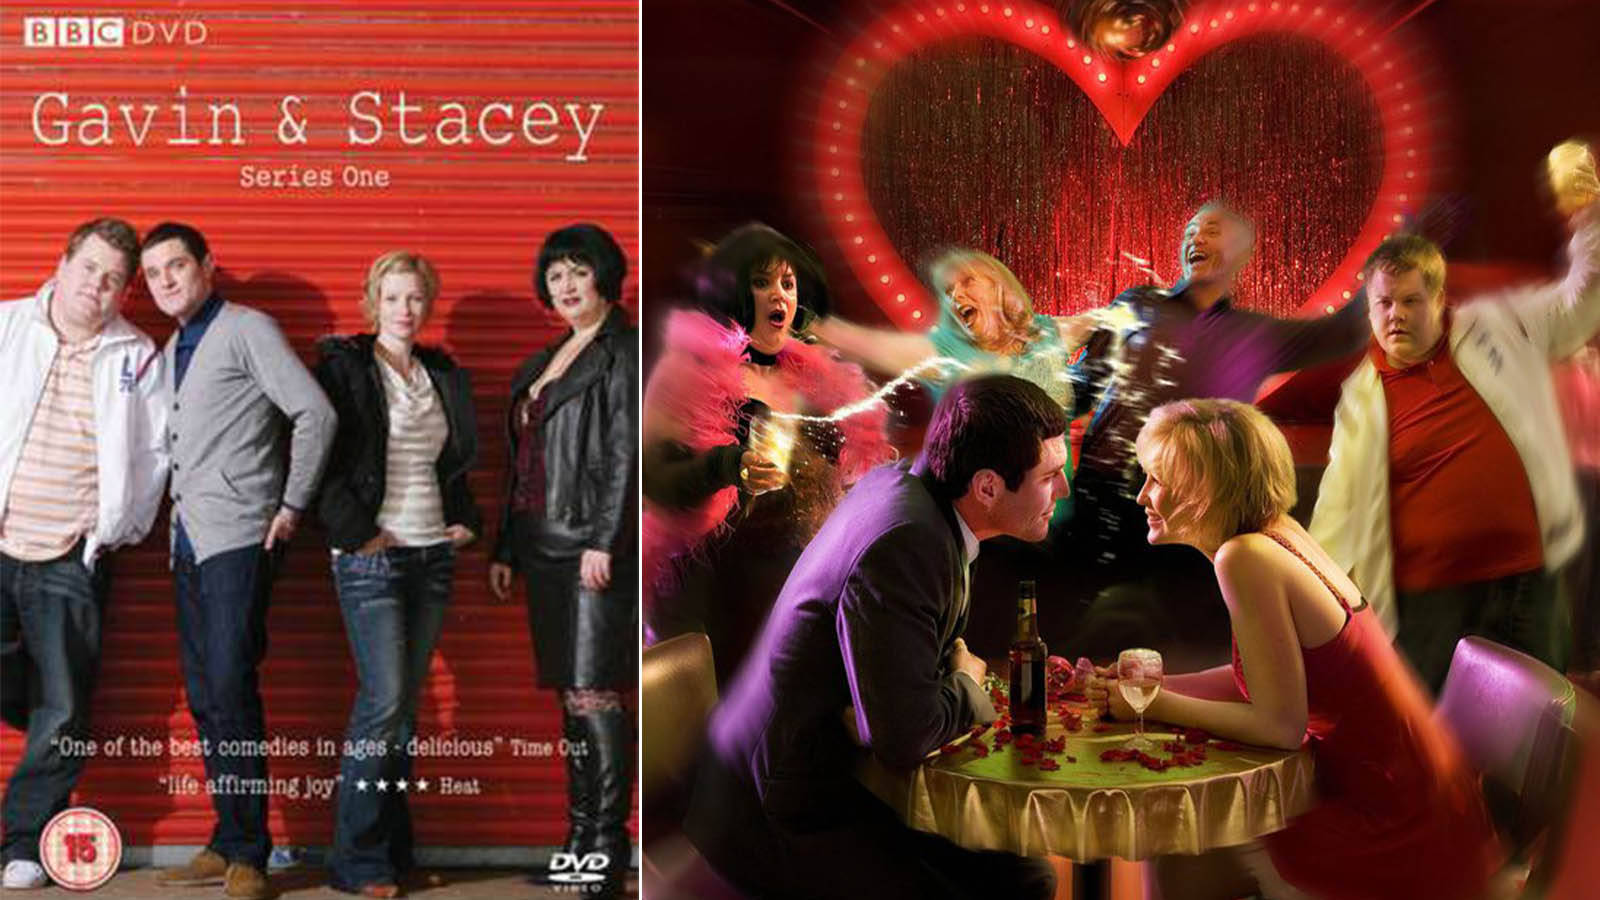 Alison Steadman Movies And Tv Shows is gavin and stacey on netflix and where can you watch the